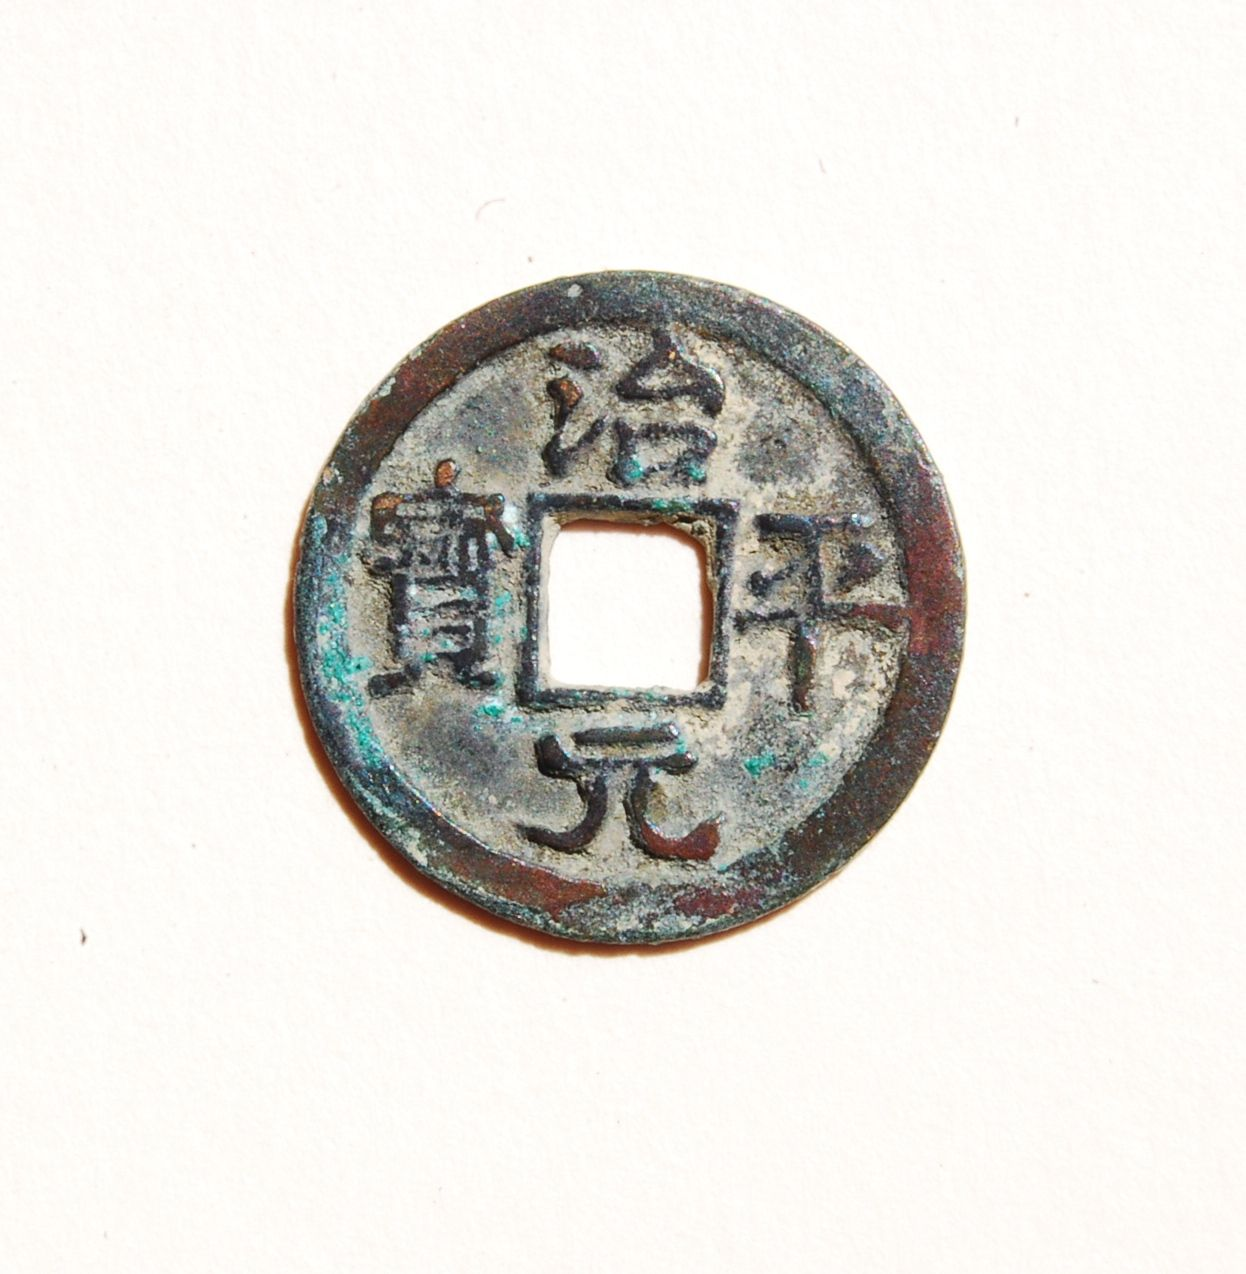 187a.   Obverse side of a Zhi Ping Tong Bao (治平通寶) 1 cash coin cast from AD 1064–1067 during the 'Zhiping' reign title of Emperor   Yingzong (英宗 ) (1063–1067 AD), of the Northern Song (北宋) Dynasty (960- 1127 AD). The obverse side features 'orthodox' script while the reverse side is plain.  24mm in size; 3+ grams in weight.   S-523.